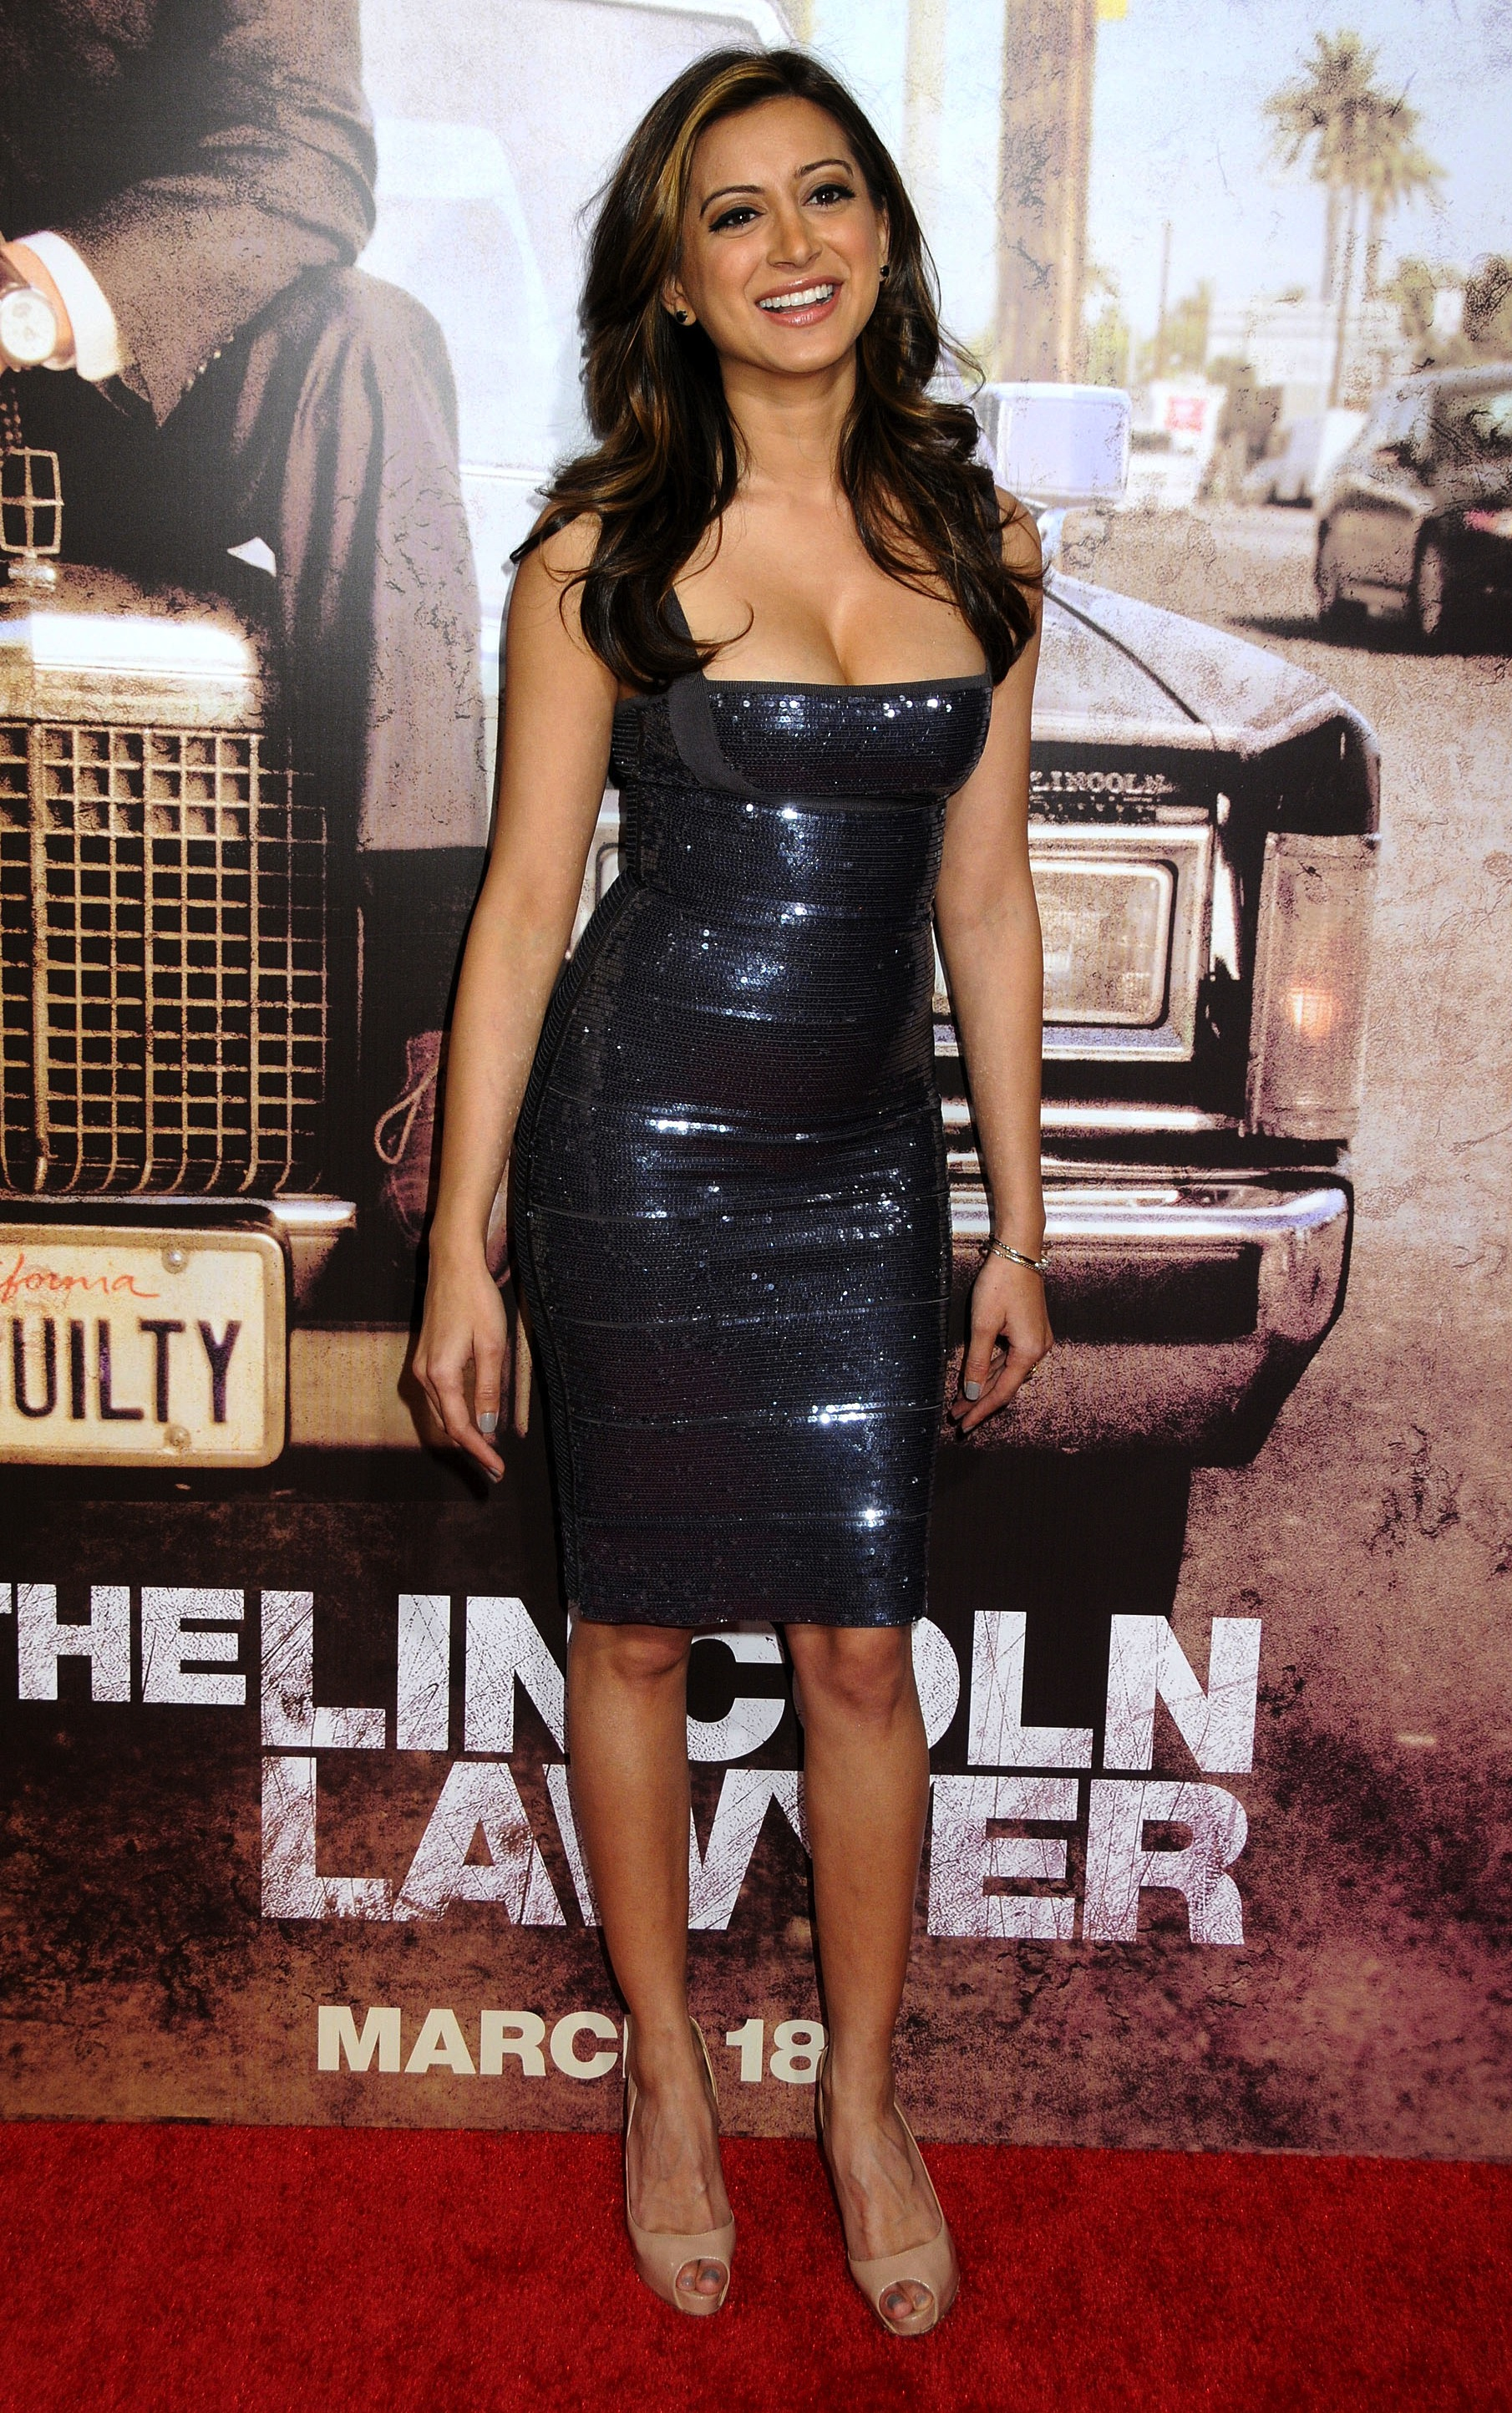 4 noureen dewulf (ryan miller) - hottest nhl celebrity wags of all time